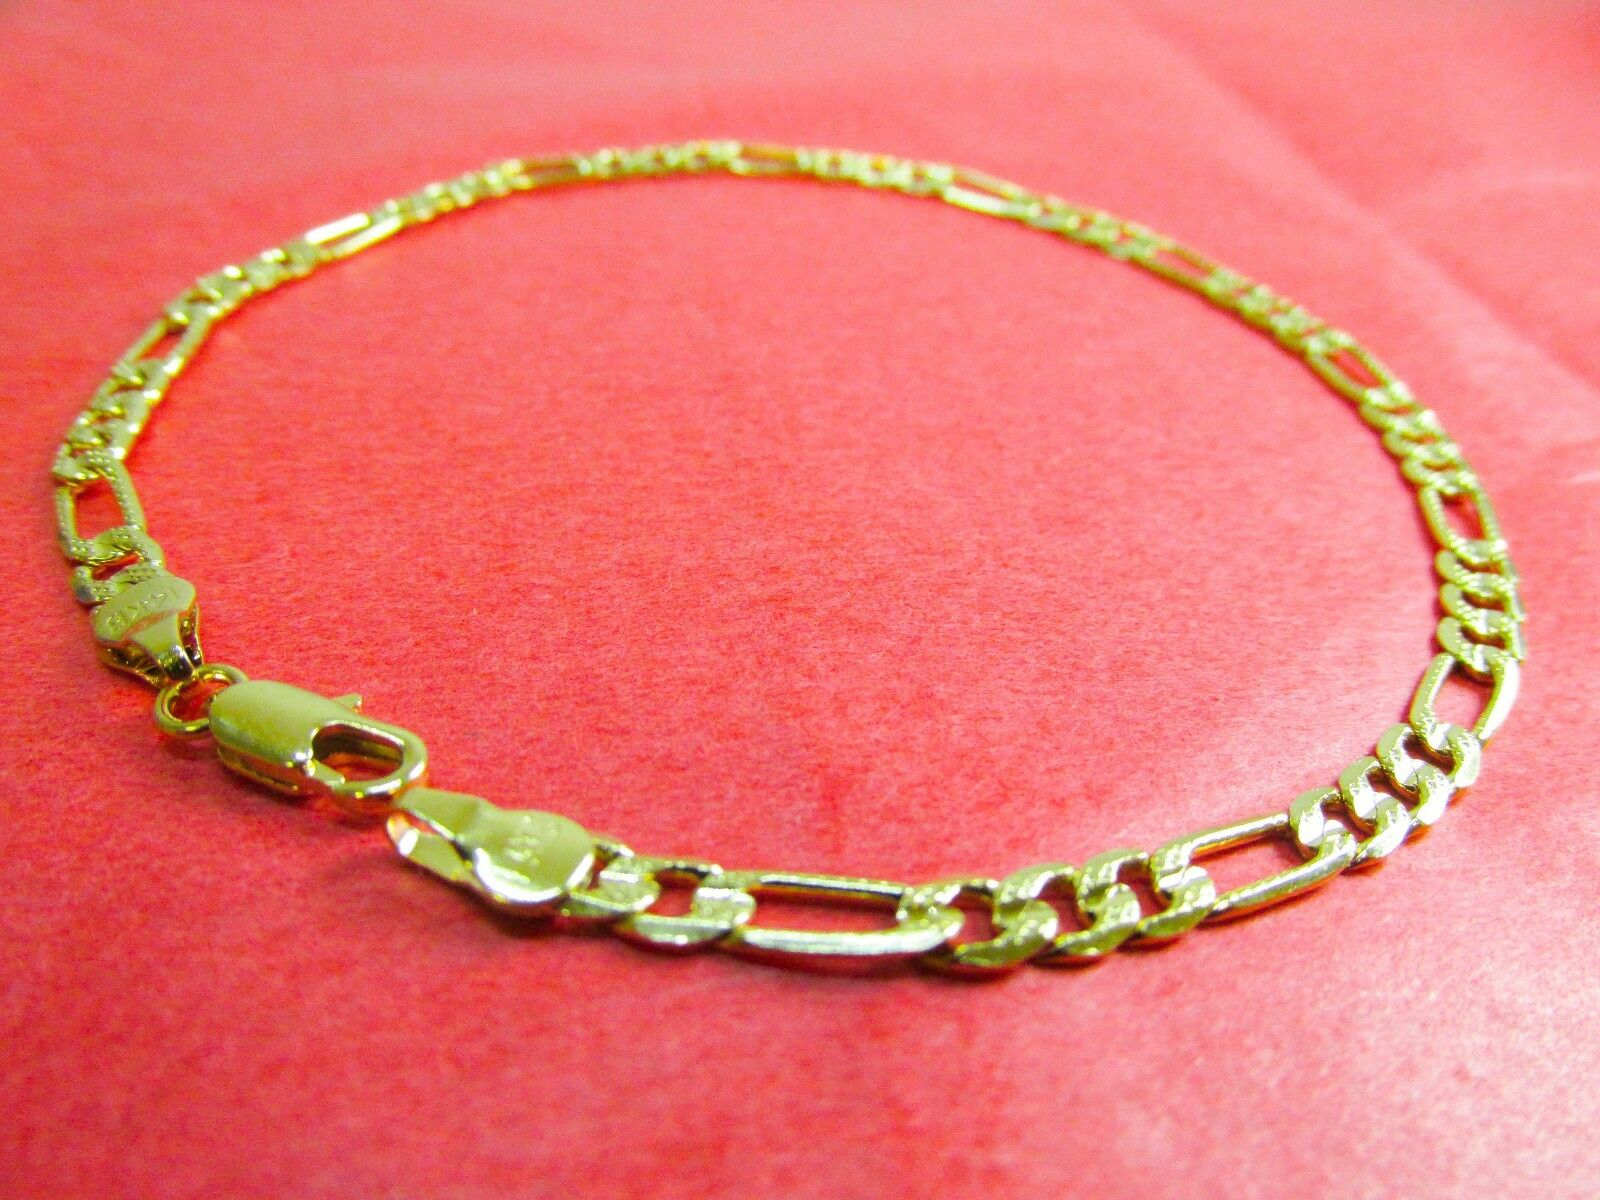 cuff diamond skinny anklet jpj jewelry bracelet product ankle jane pope